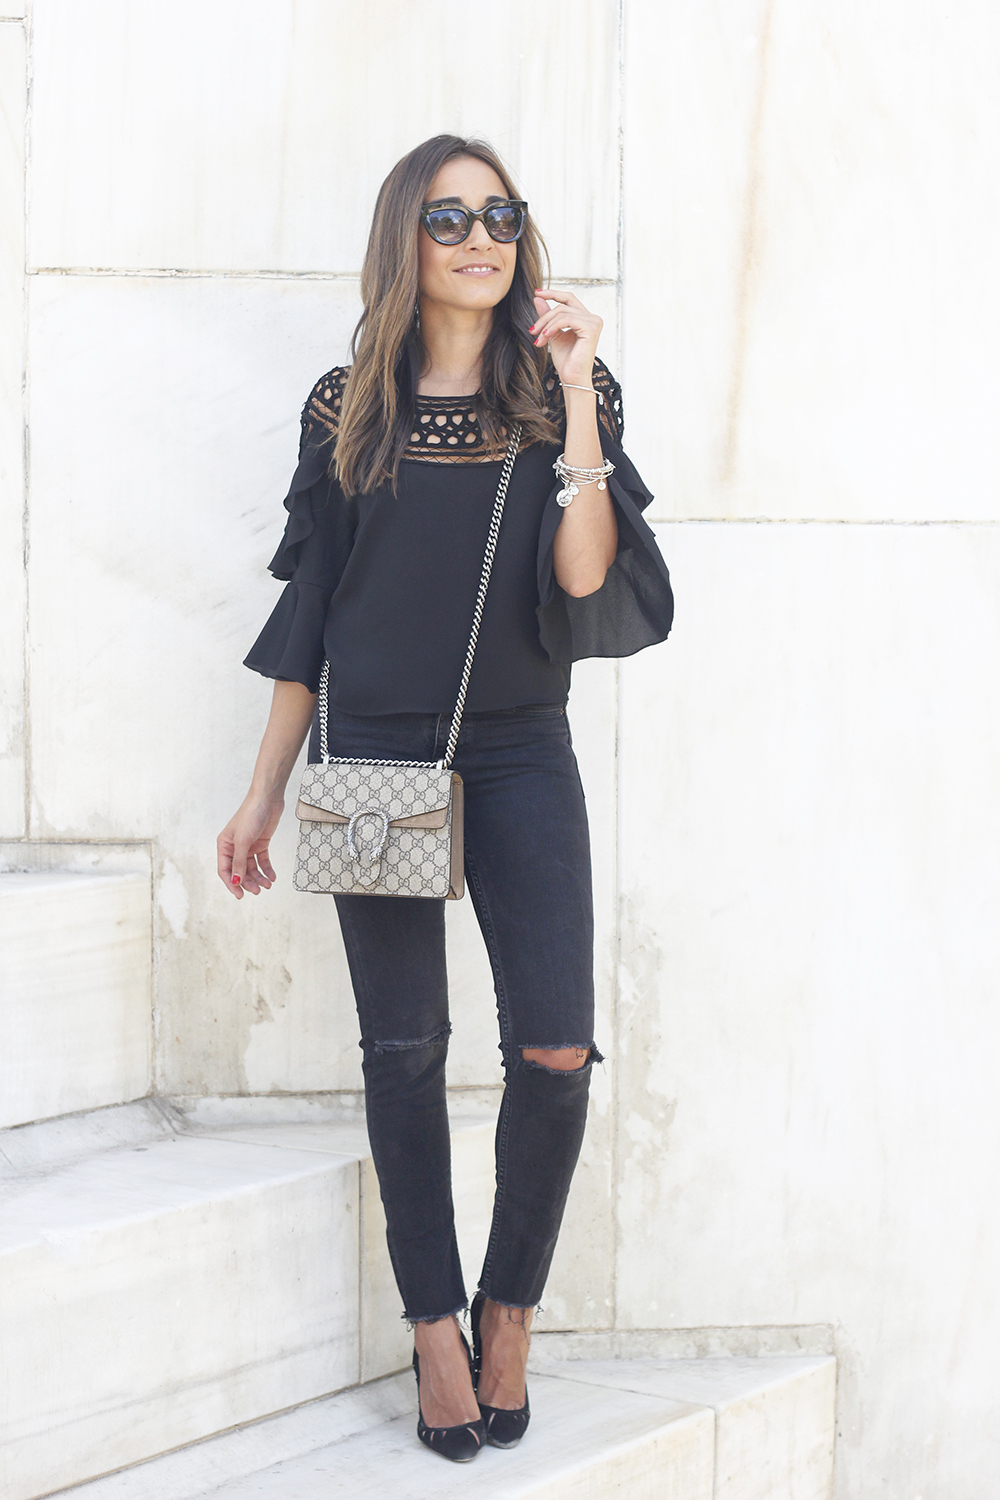 black top black jeans heels gucci bag sunnies outfit fashion style19